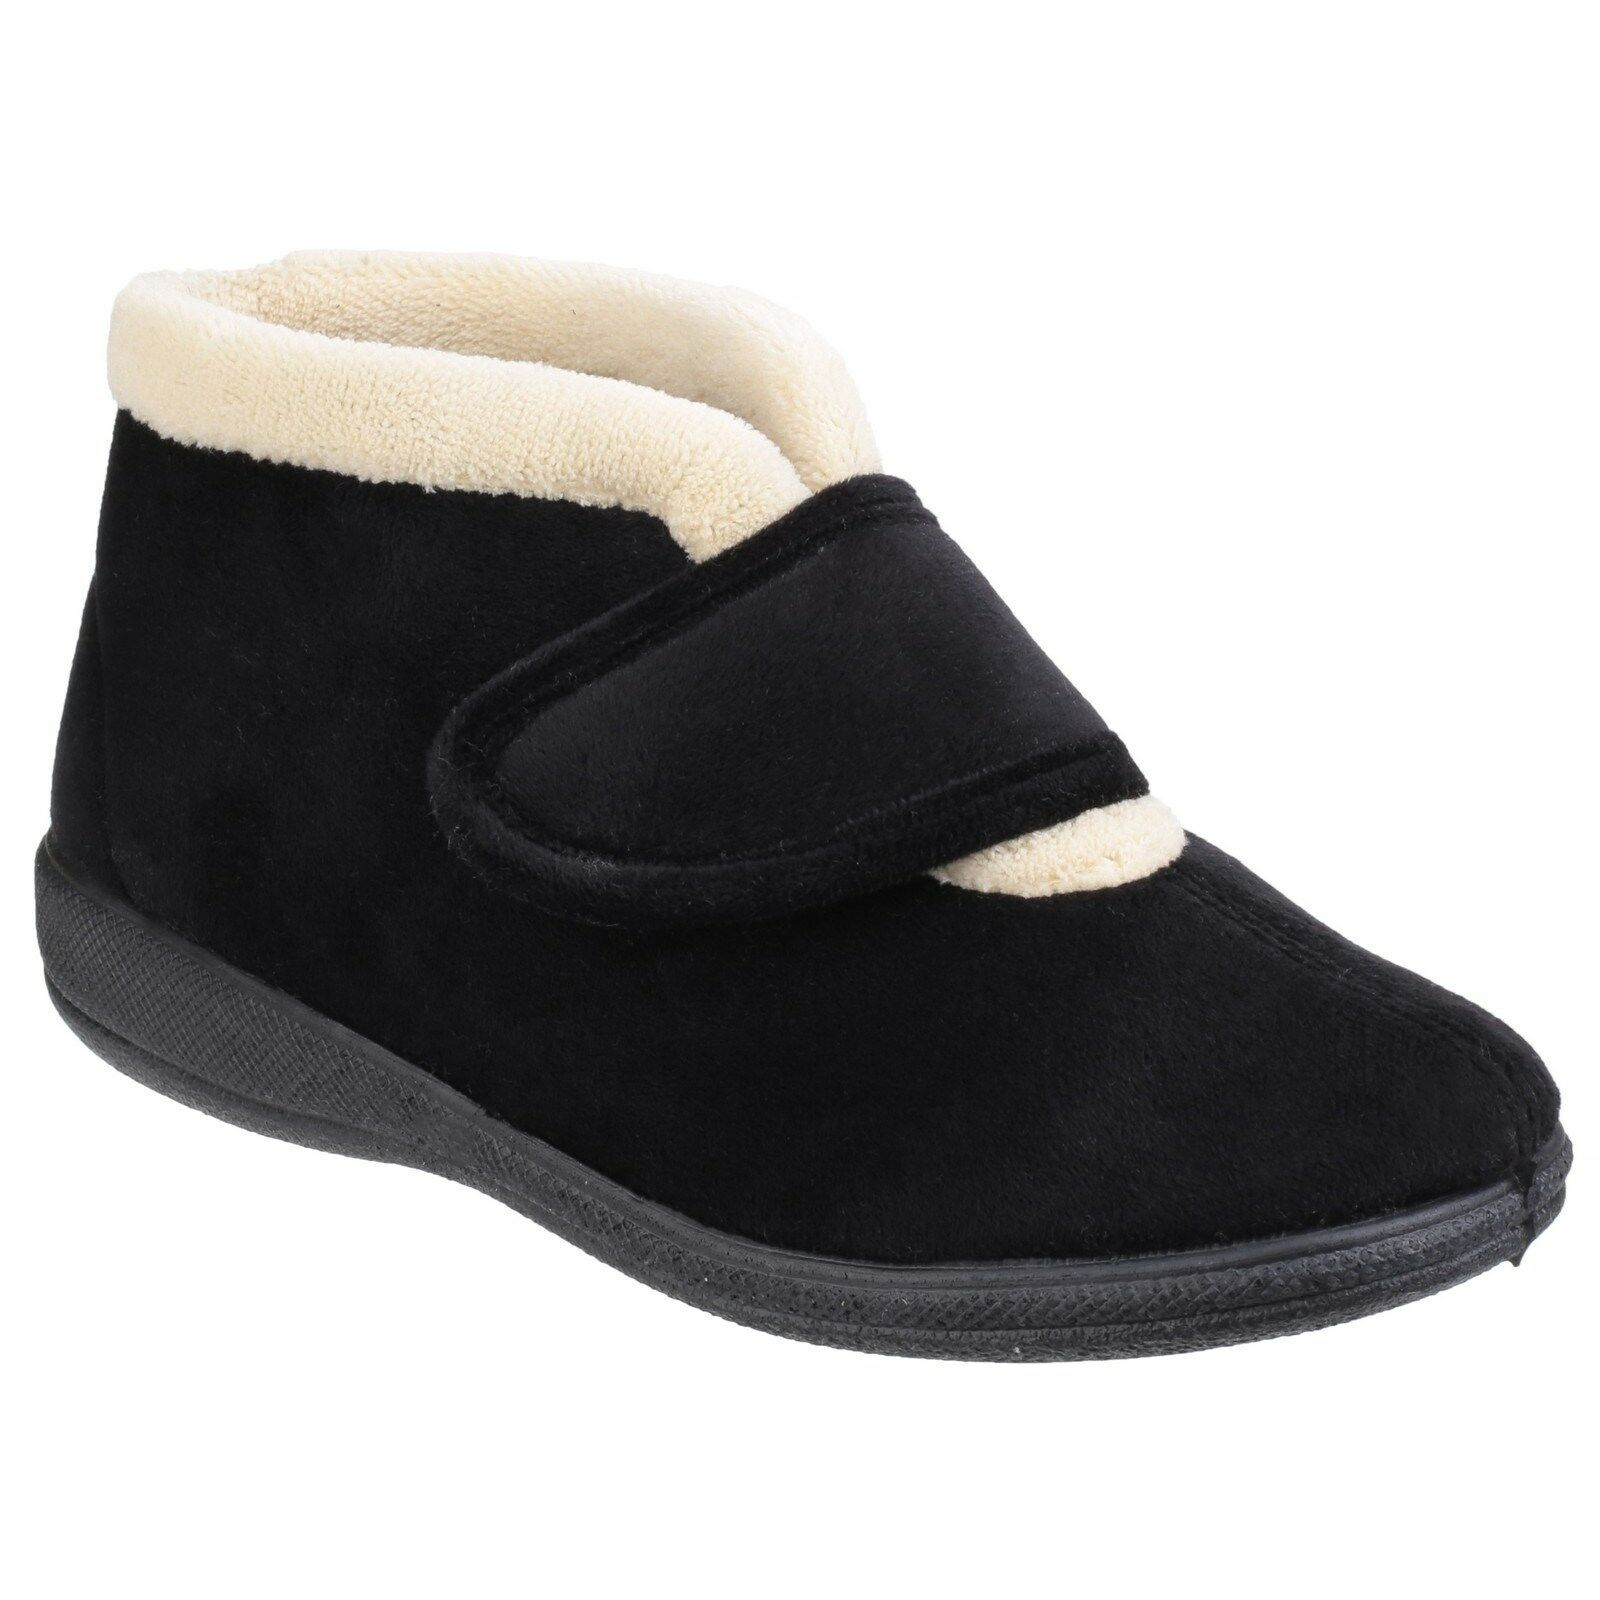 Ladies Sleepers Lucy Microfibre V Throat Touch Fastening Memory Foam Slippers